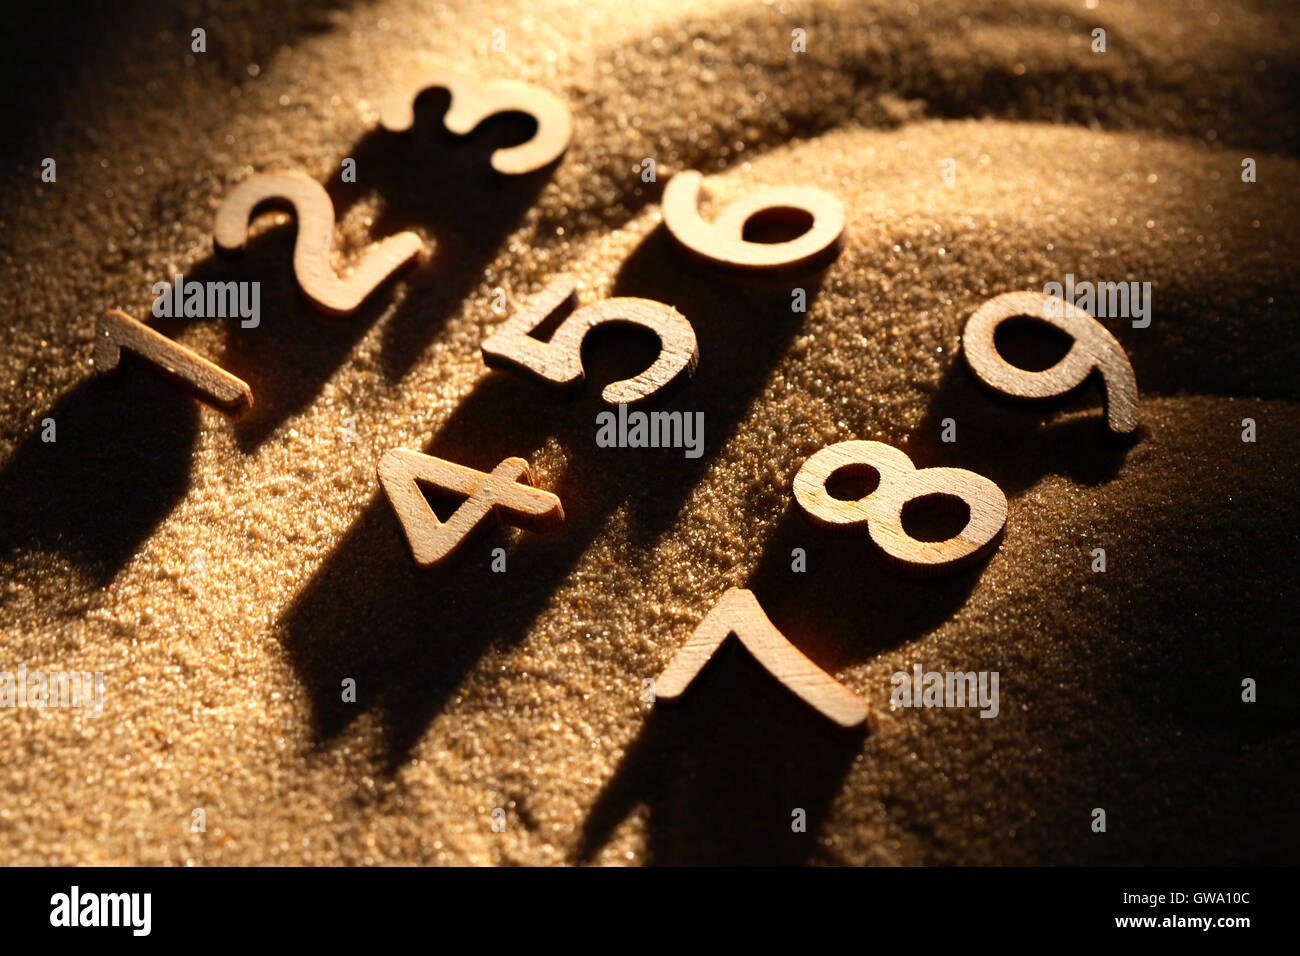 Numbering On Sand - Stock Image